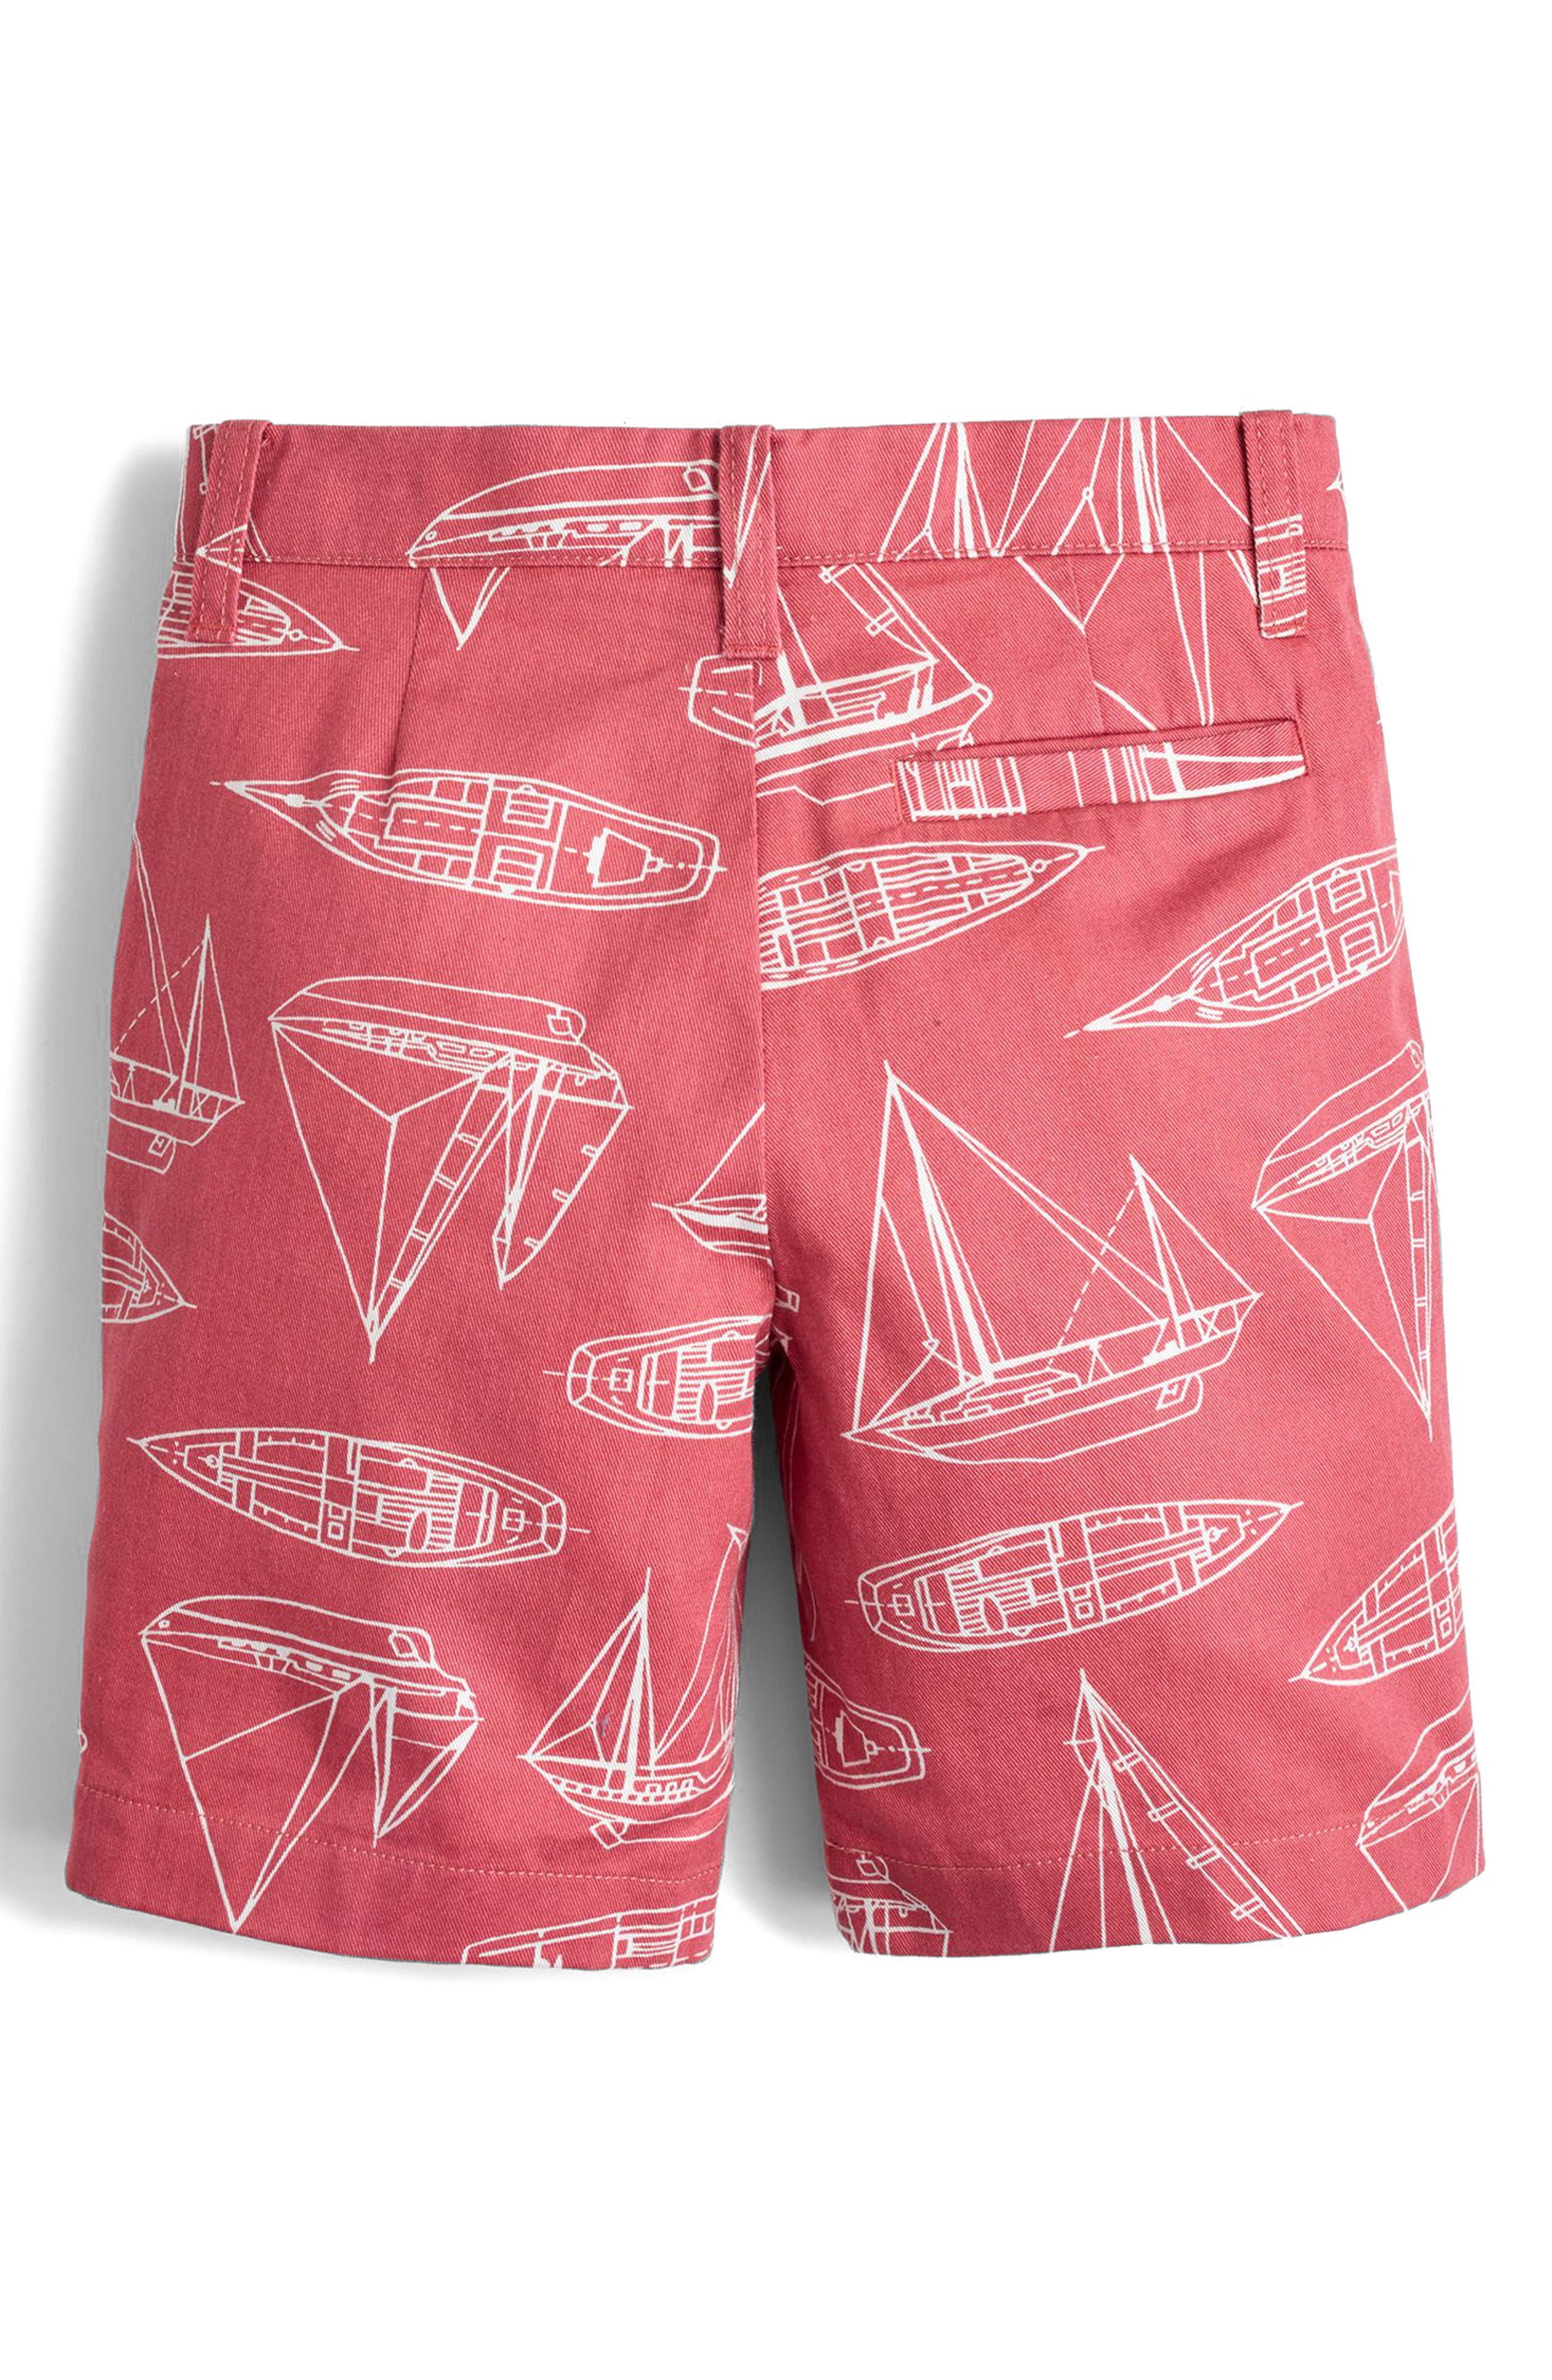 Stanton Boat Print Shorts,                             Alternate thumbnail 2, color,                             Red Boats